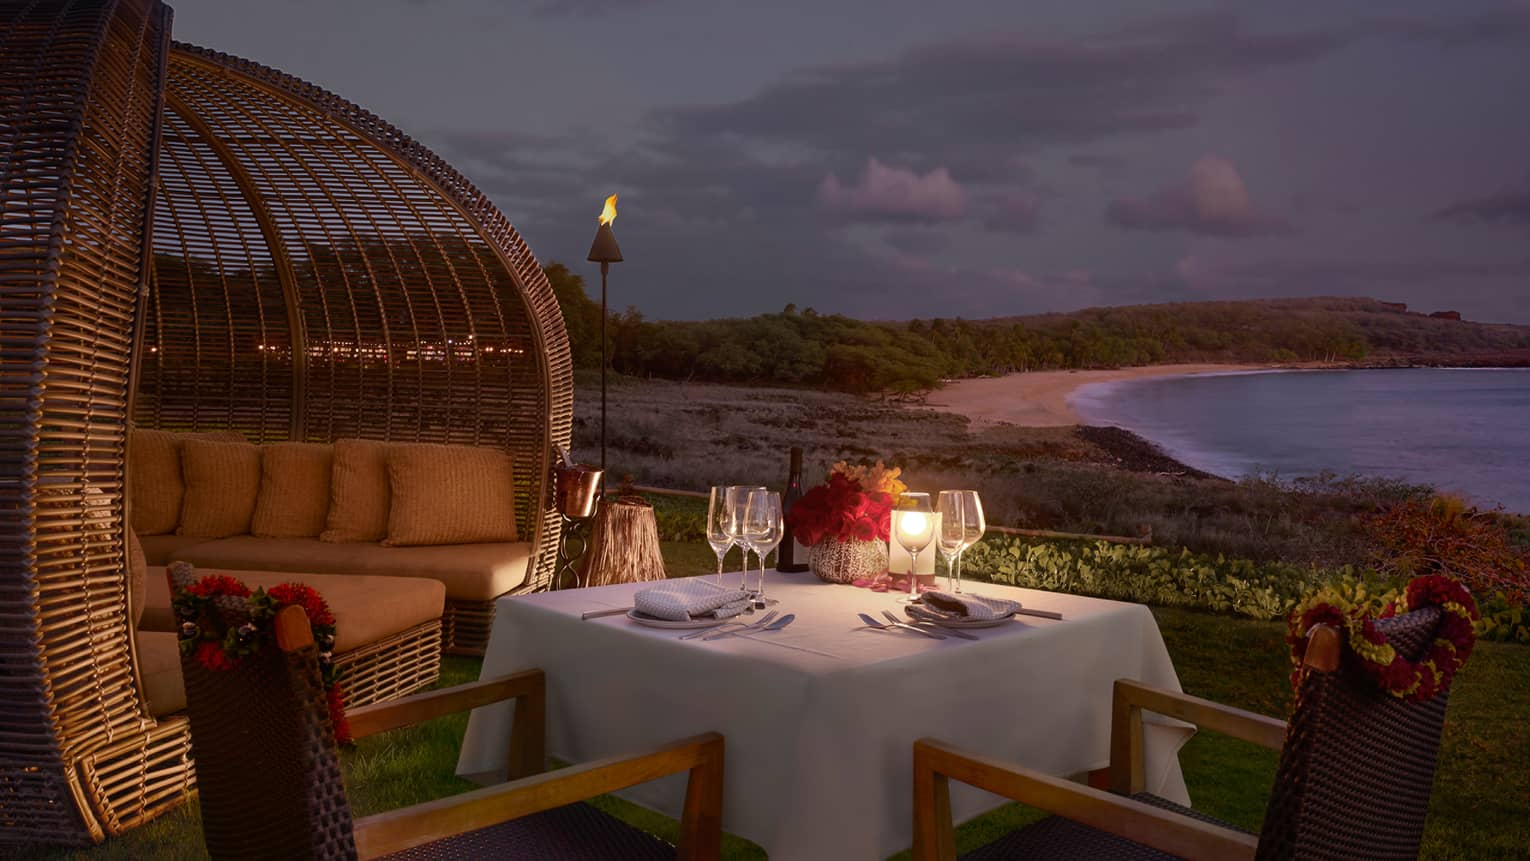 Candle-lit, private dining table with white cloth on patio by cabana, beach, ocean at night